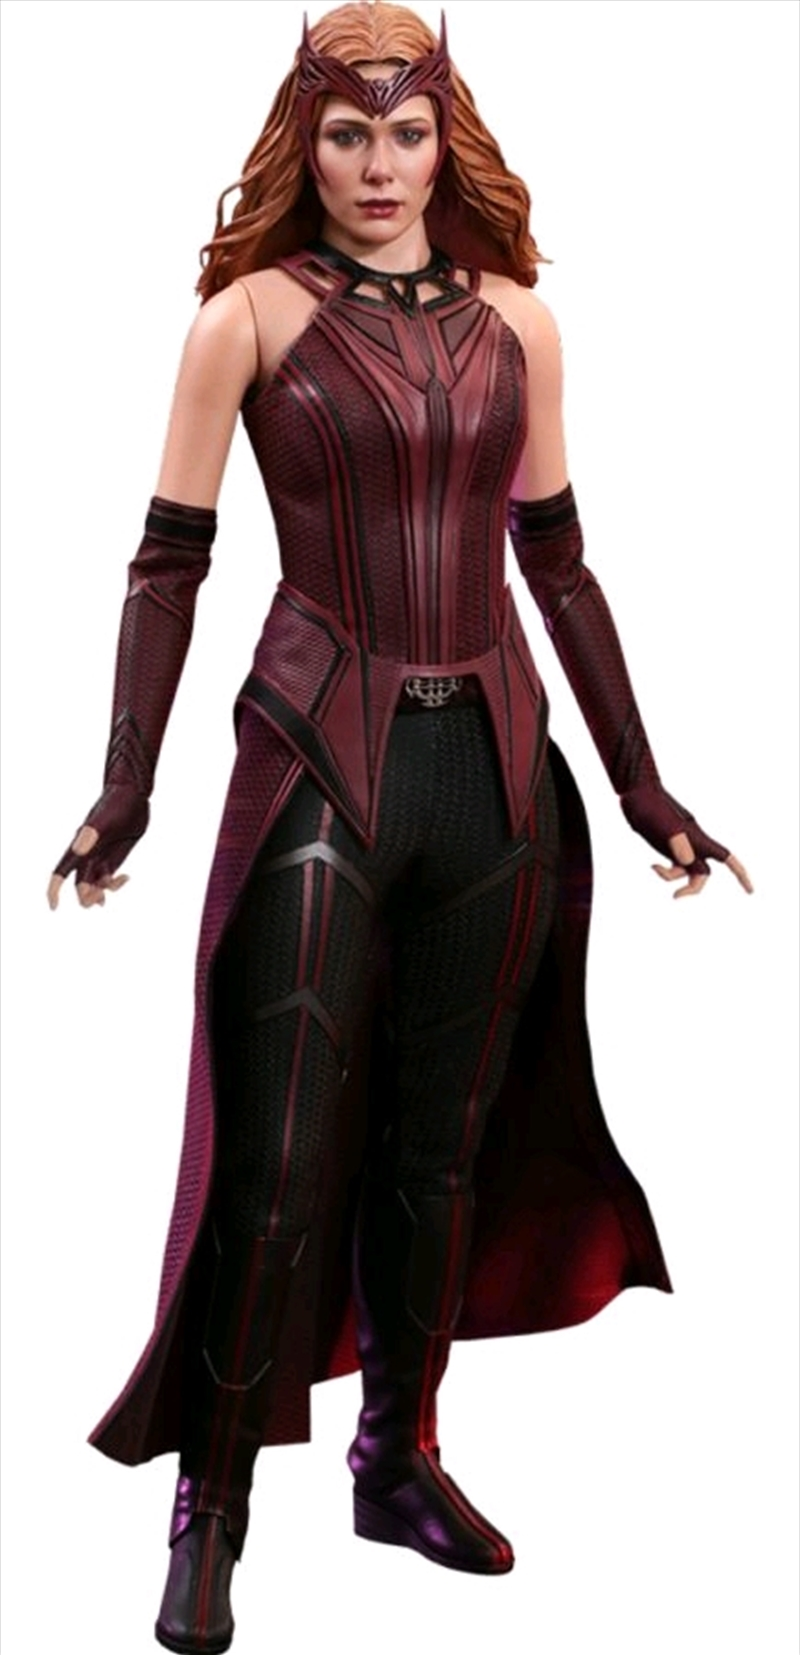 """WandaVision - The Scarlet Witch 1:6 Scale 12"""" Action Figure 